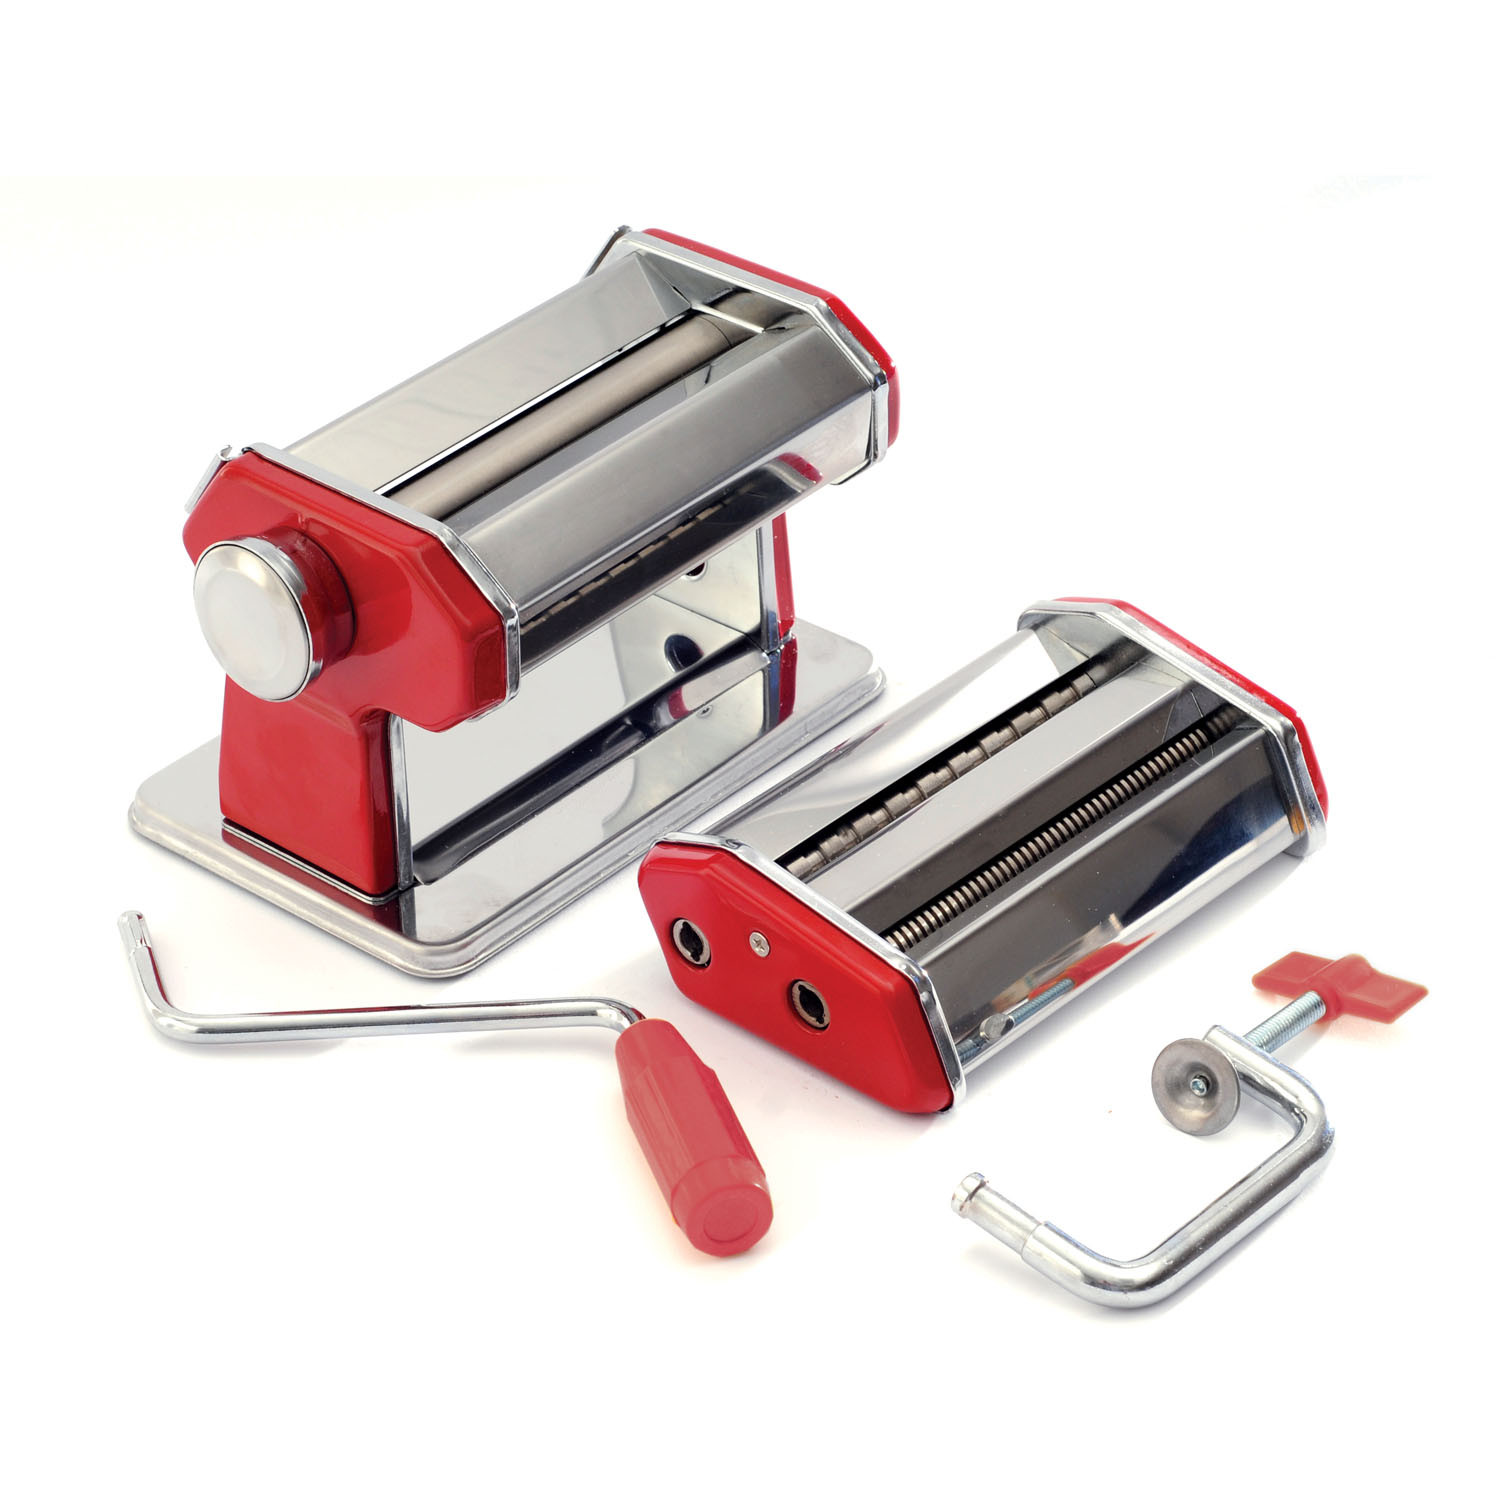 Norpro Stainless Steel and Red Hand Crank Pasta Machine